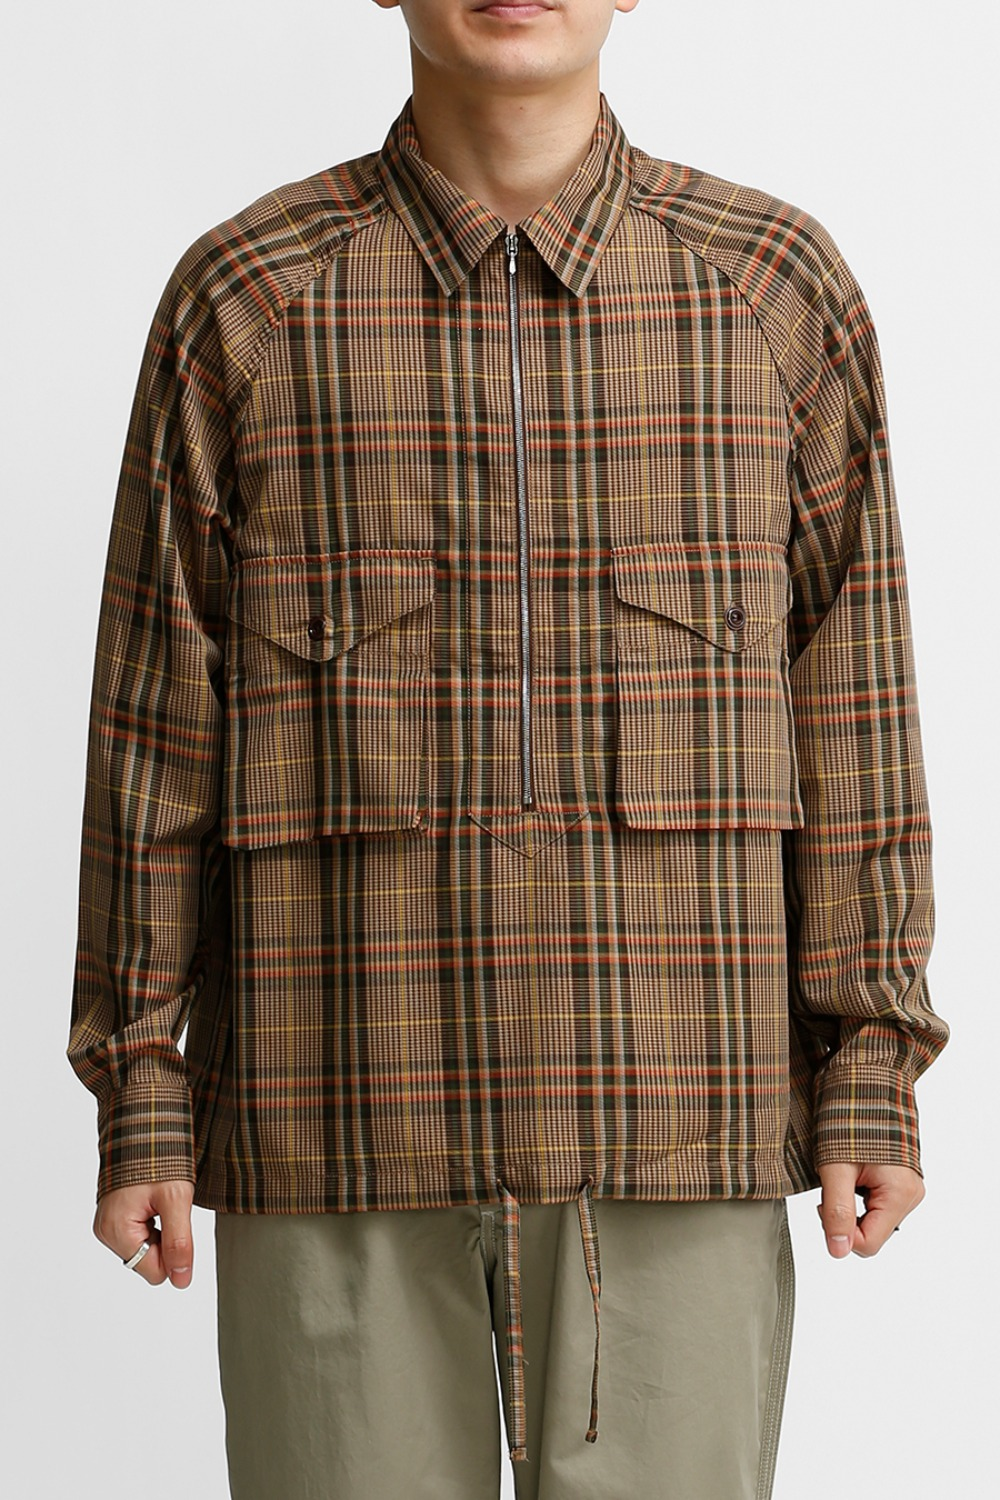 SCOUT PULLOVER SHIRT / BEIGE MULTI CHECK